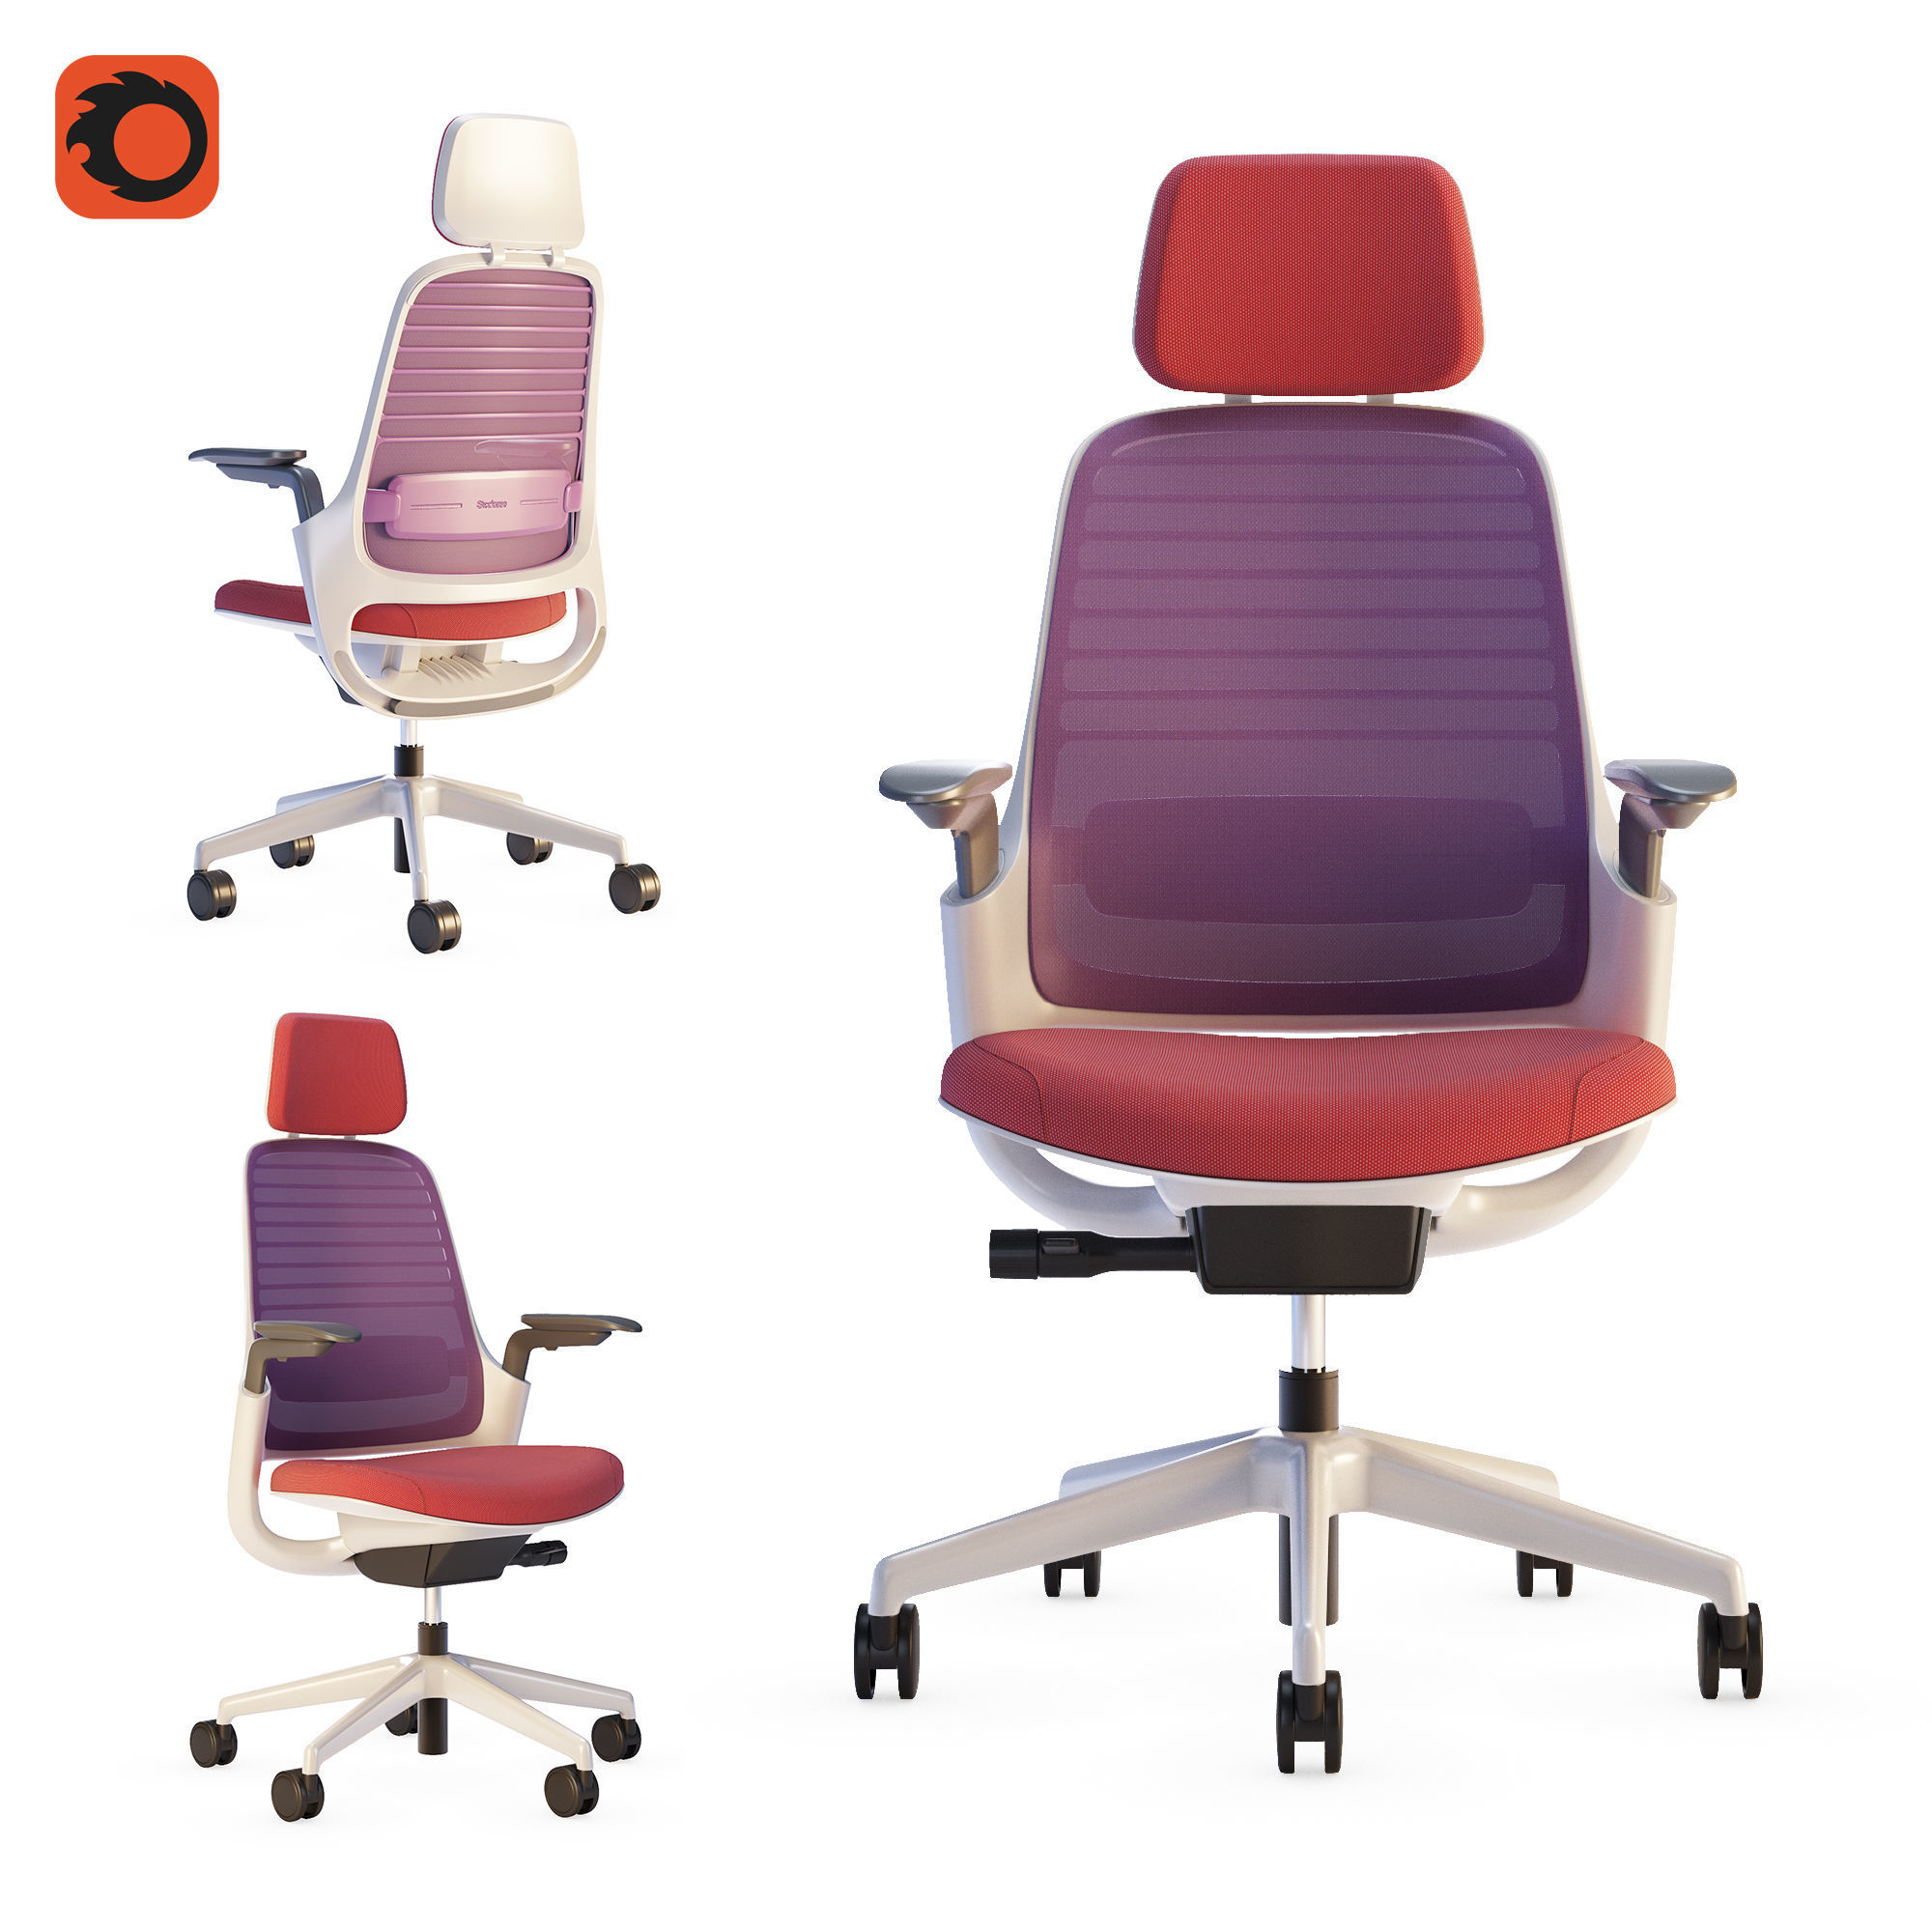 Steelcase - Office Chair Series1